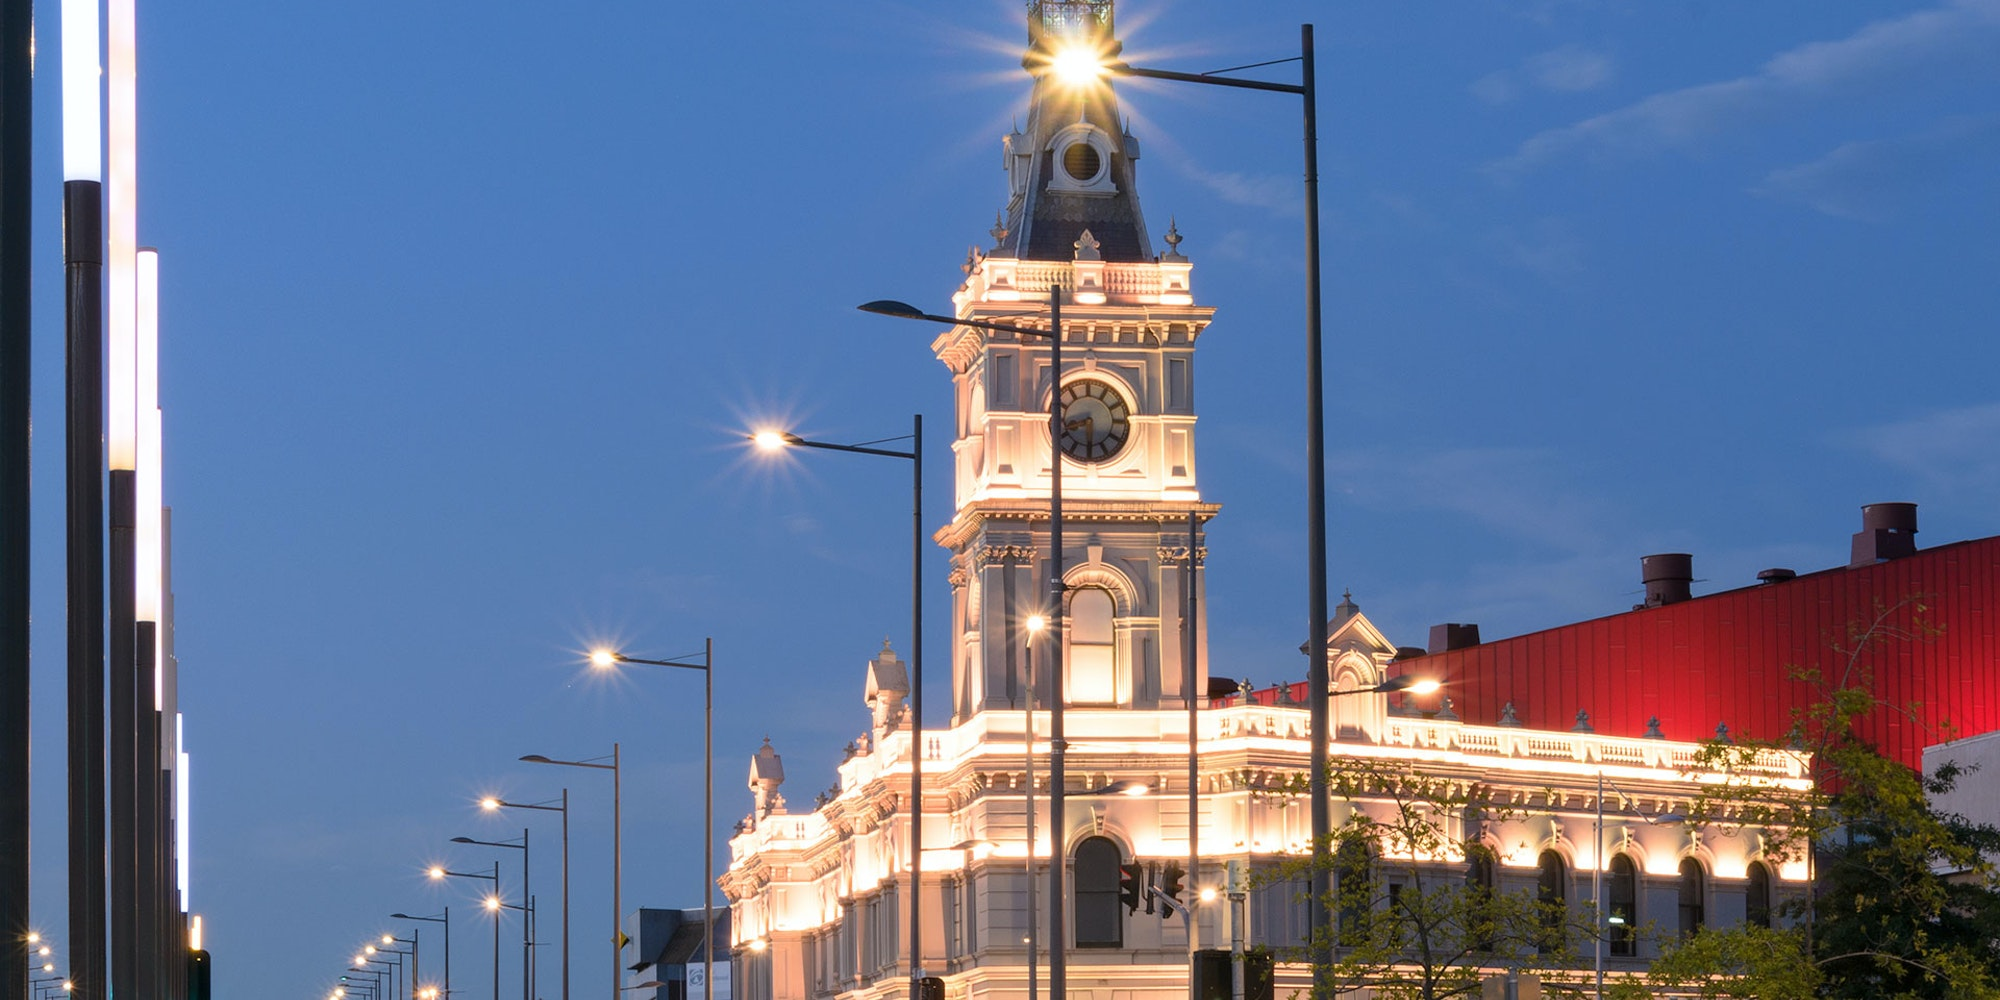 Latitude LED luminaire in application, installed on the façade of the former Dandenong Town Hall, now known as the Drum Theatre in Melbourne.